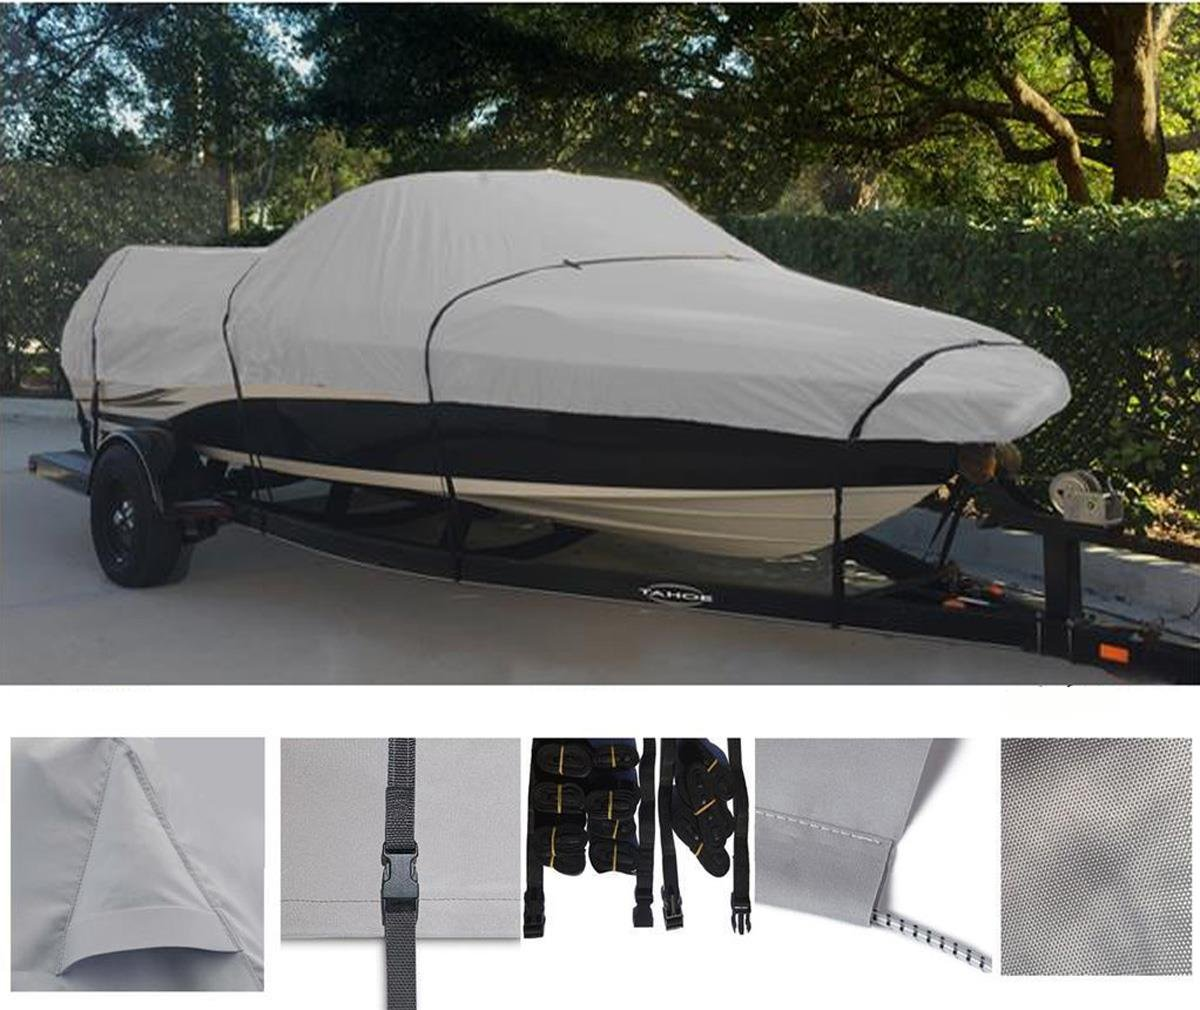 GREY, STORAGE, TRAVEL, MOORING BOAT COVER FOR EBBTIDE/DYNATRAK CAMPIONE 204 1989-1993 by SBU